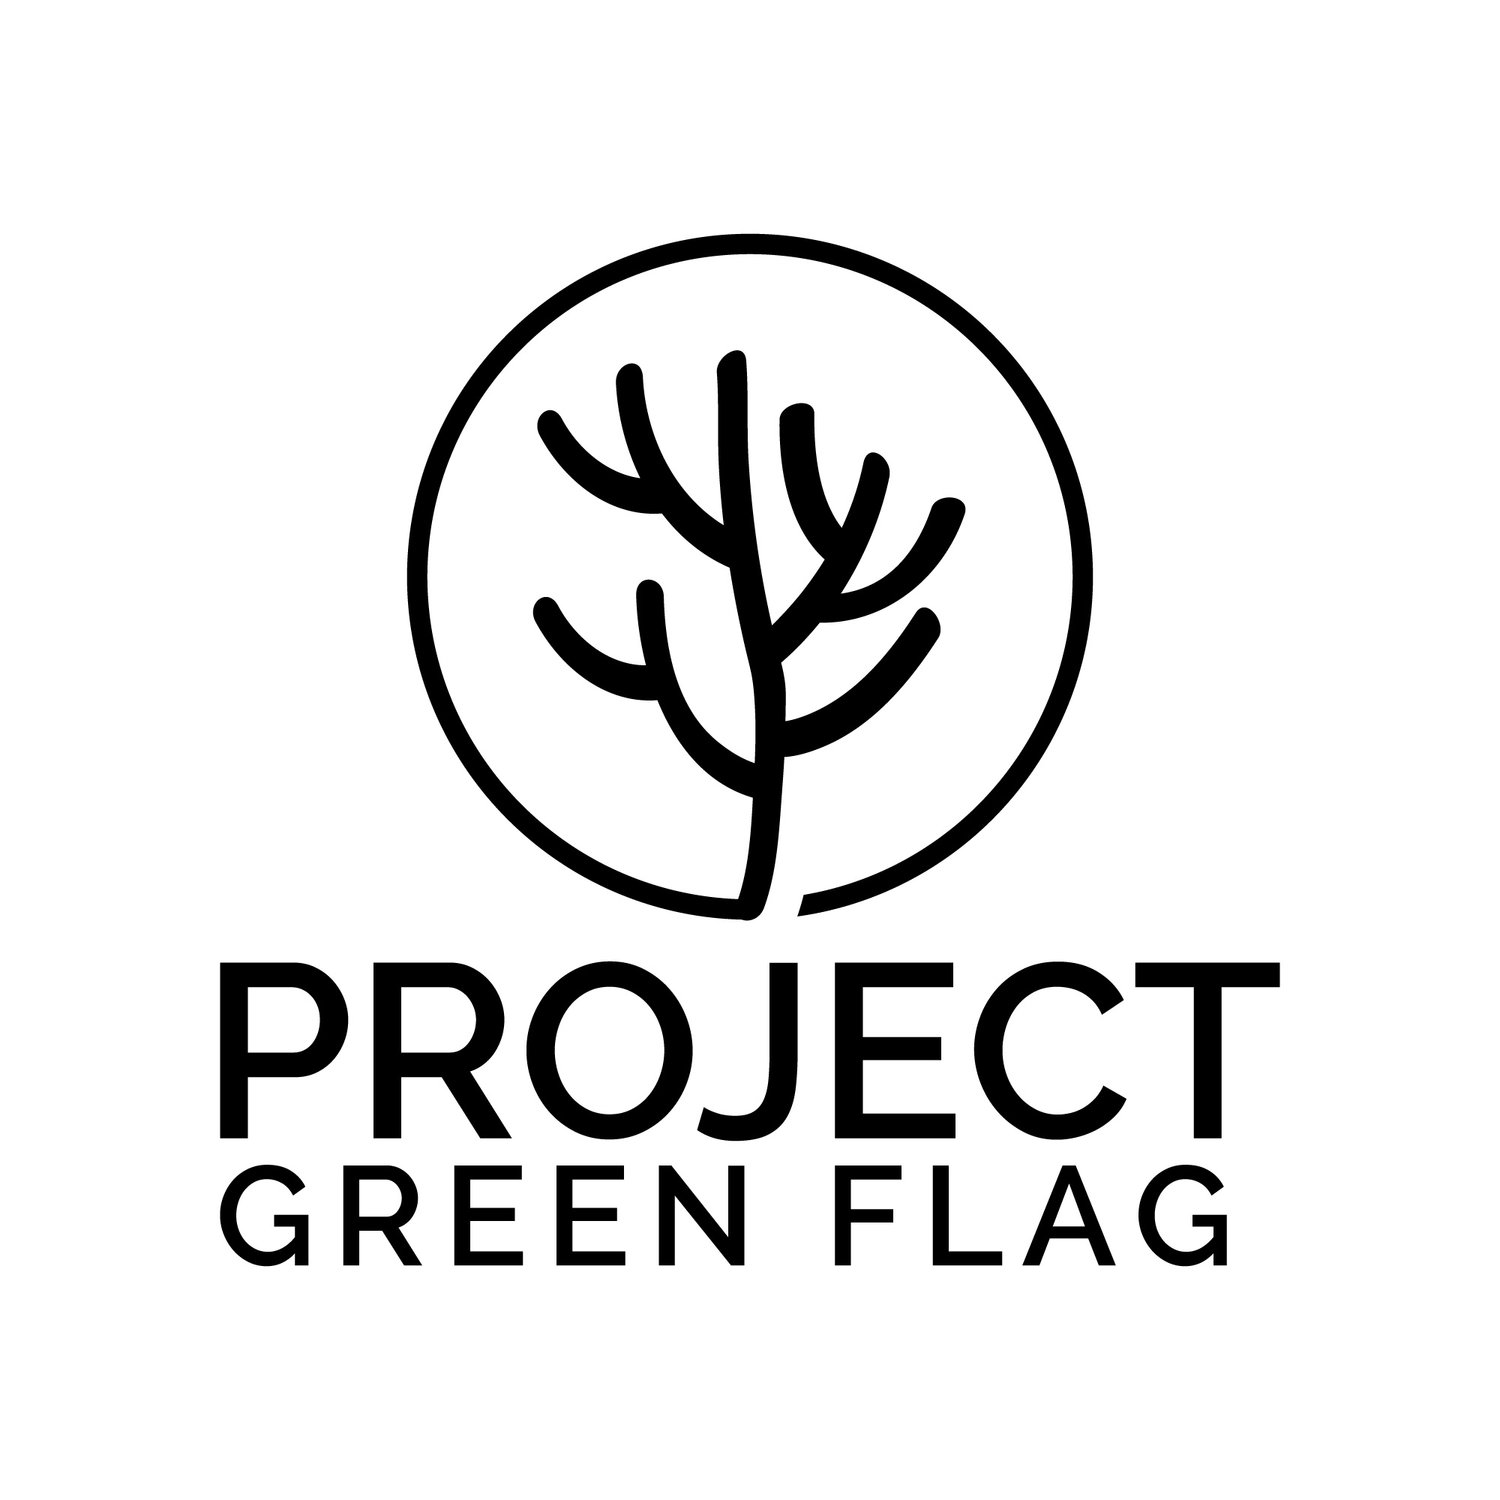 Project Green Flag